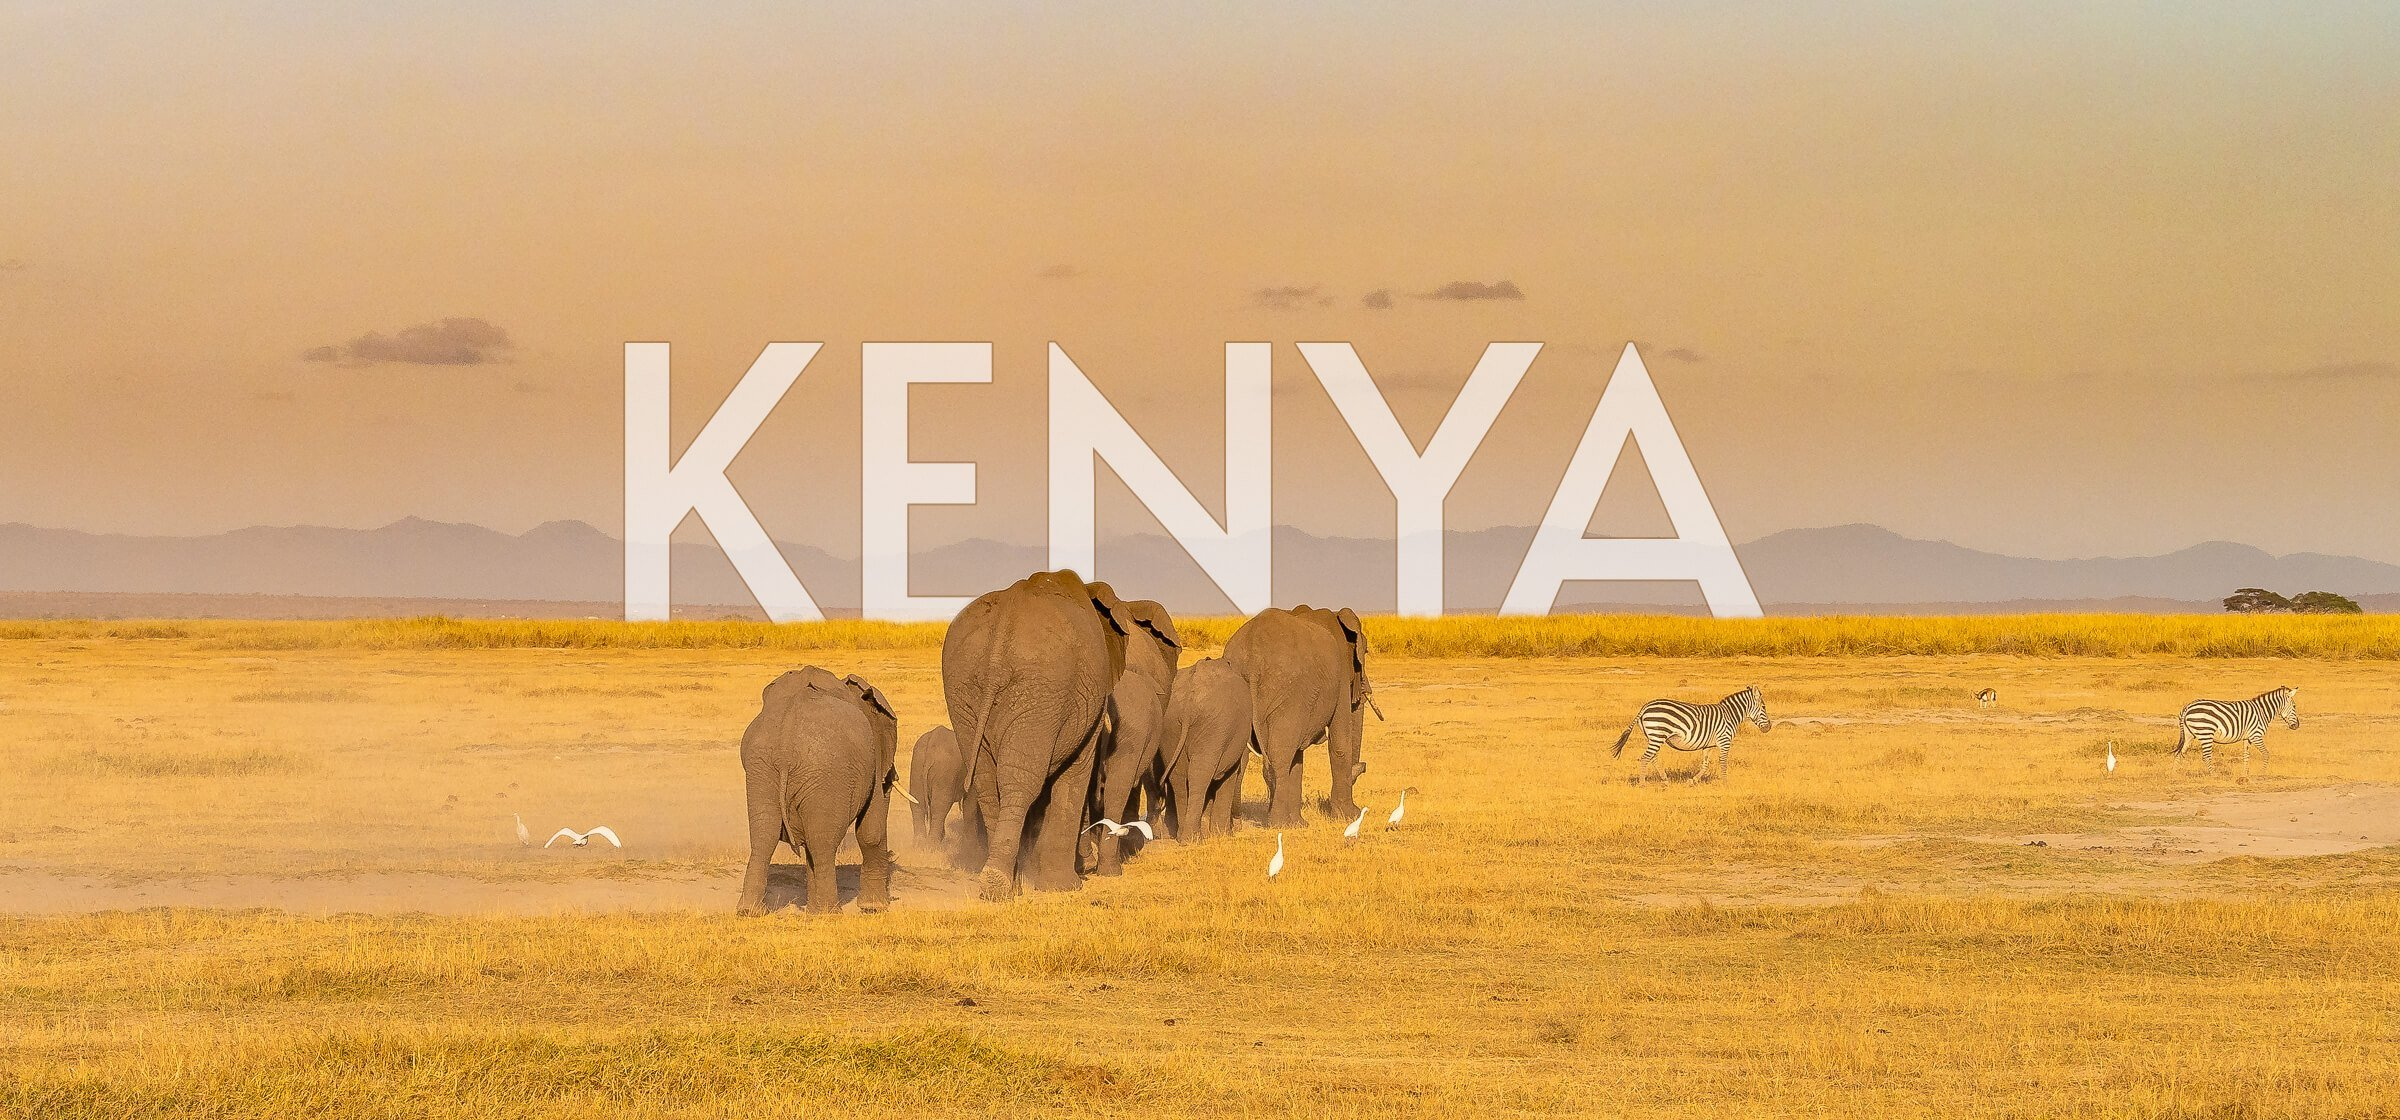 elephants walking into the horizon in Kenya, Nairobi National Park